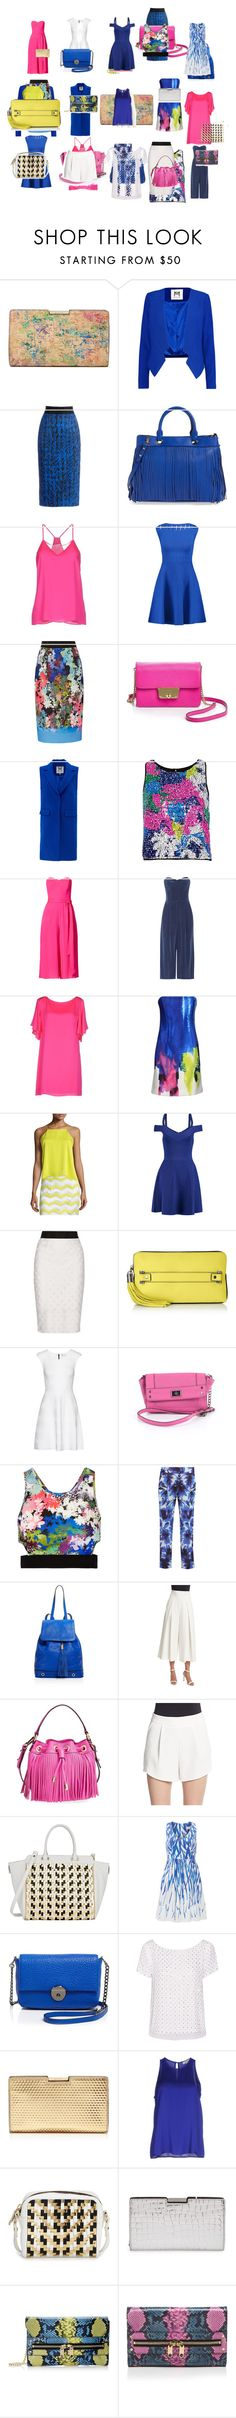 """Untitled #3582"" by luciana-boneca on Polyvore featuring Milly"